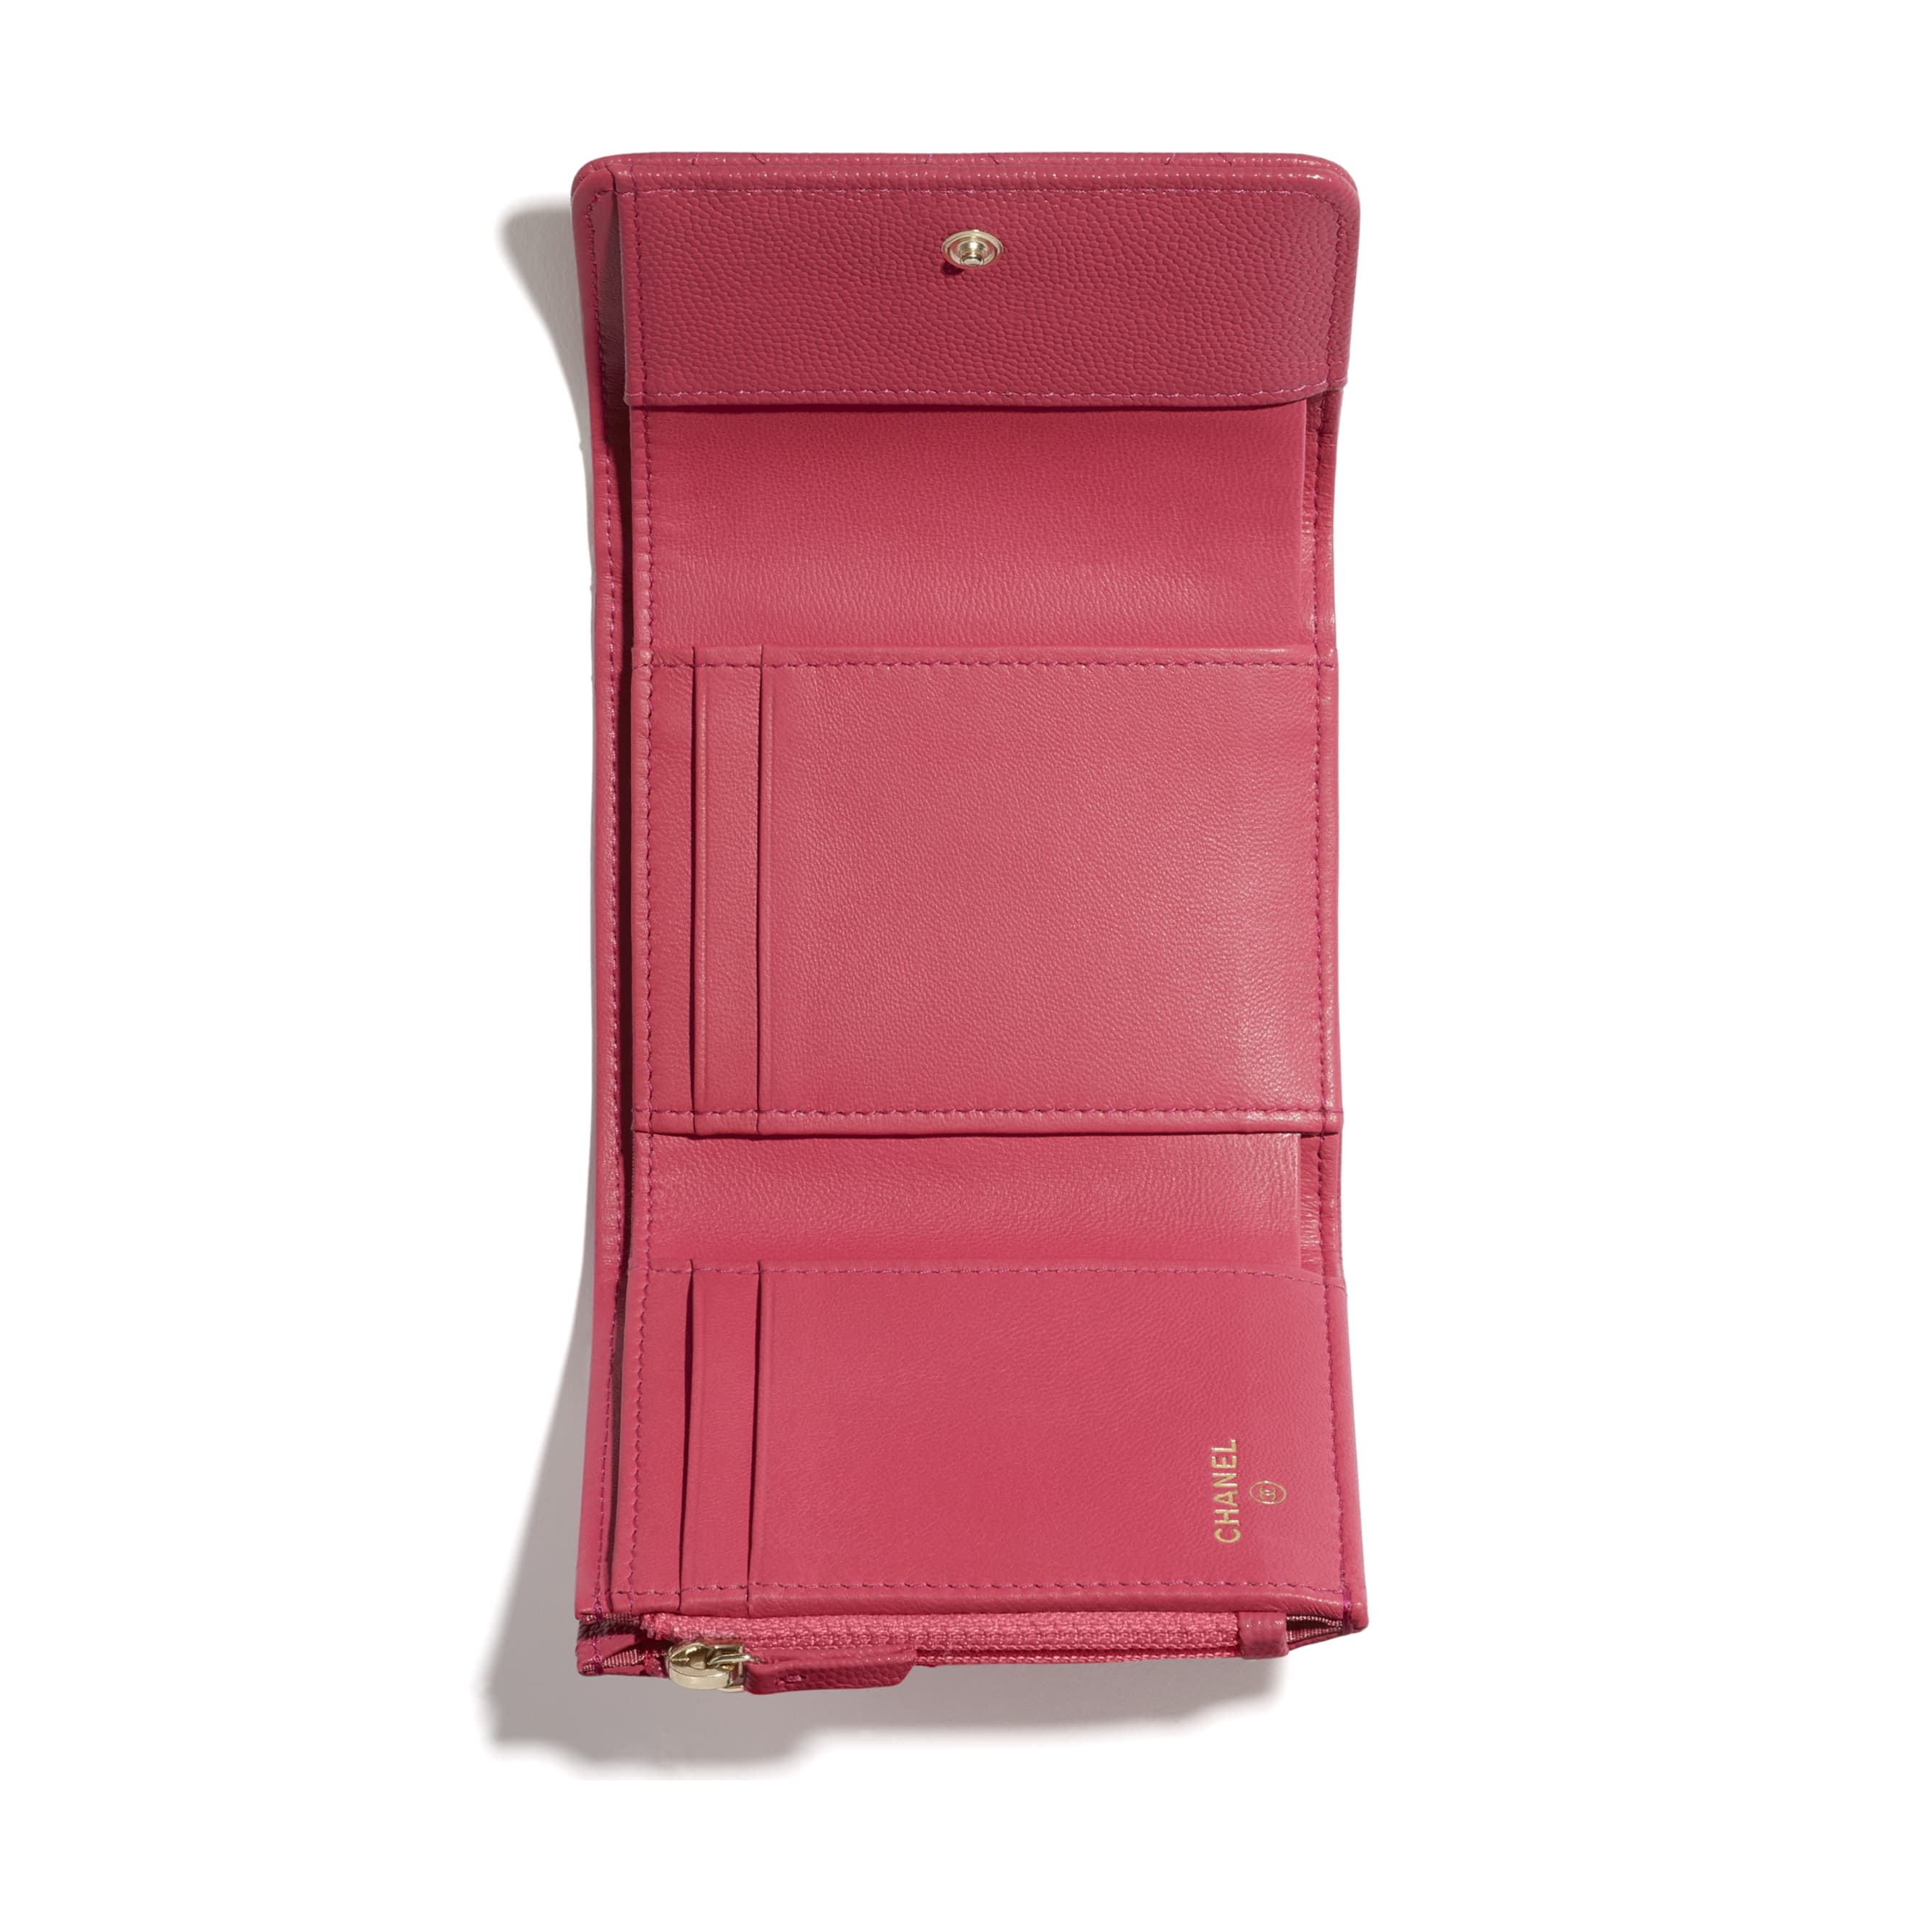 Small Flap Wallet - Pink - Grained Calfskin & Gold-Tone Metal - CHANEL - Other view - see standard sized version